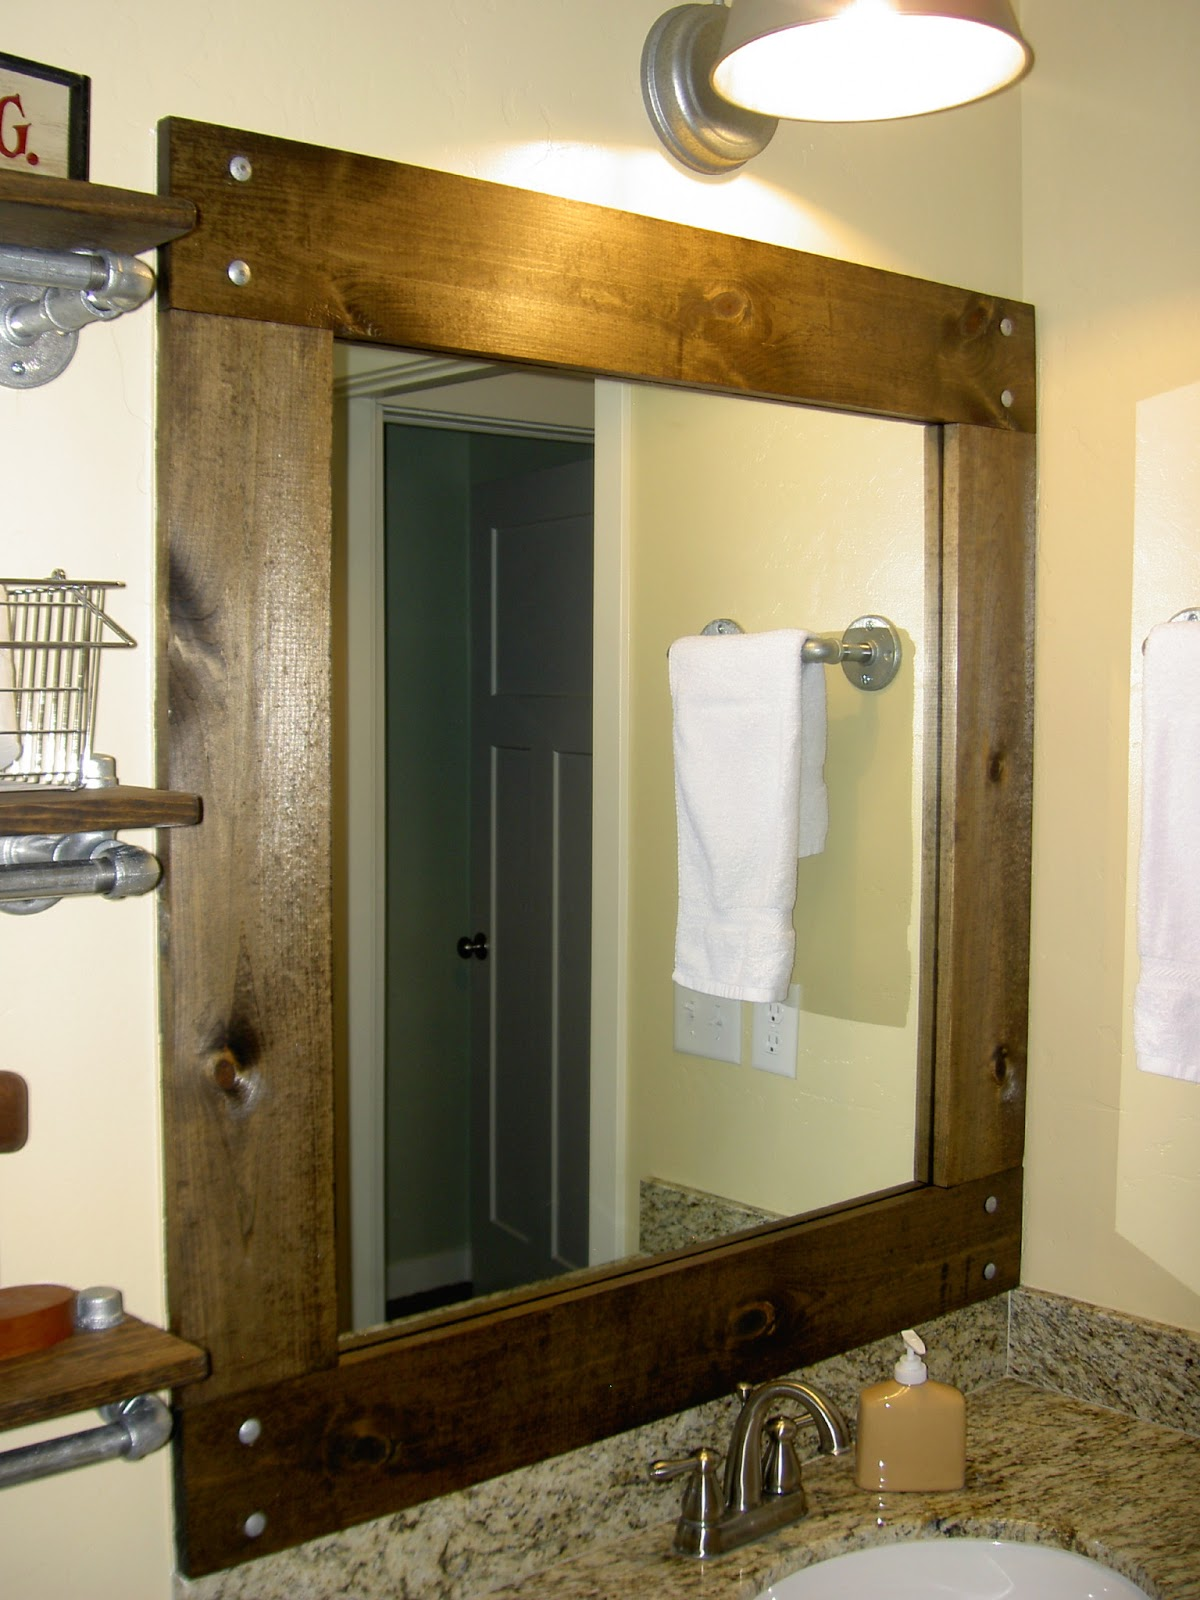 Chapman place framed bathroom mirror